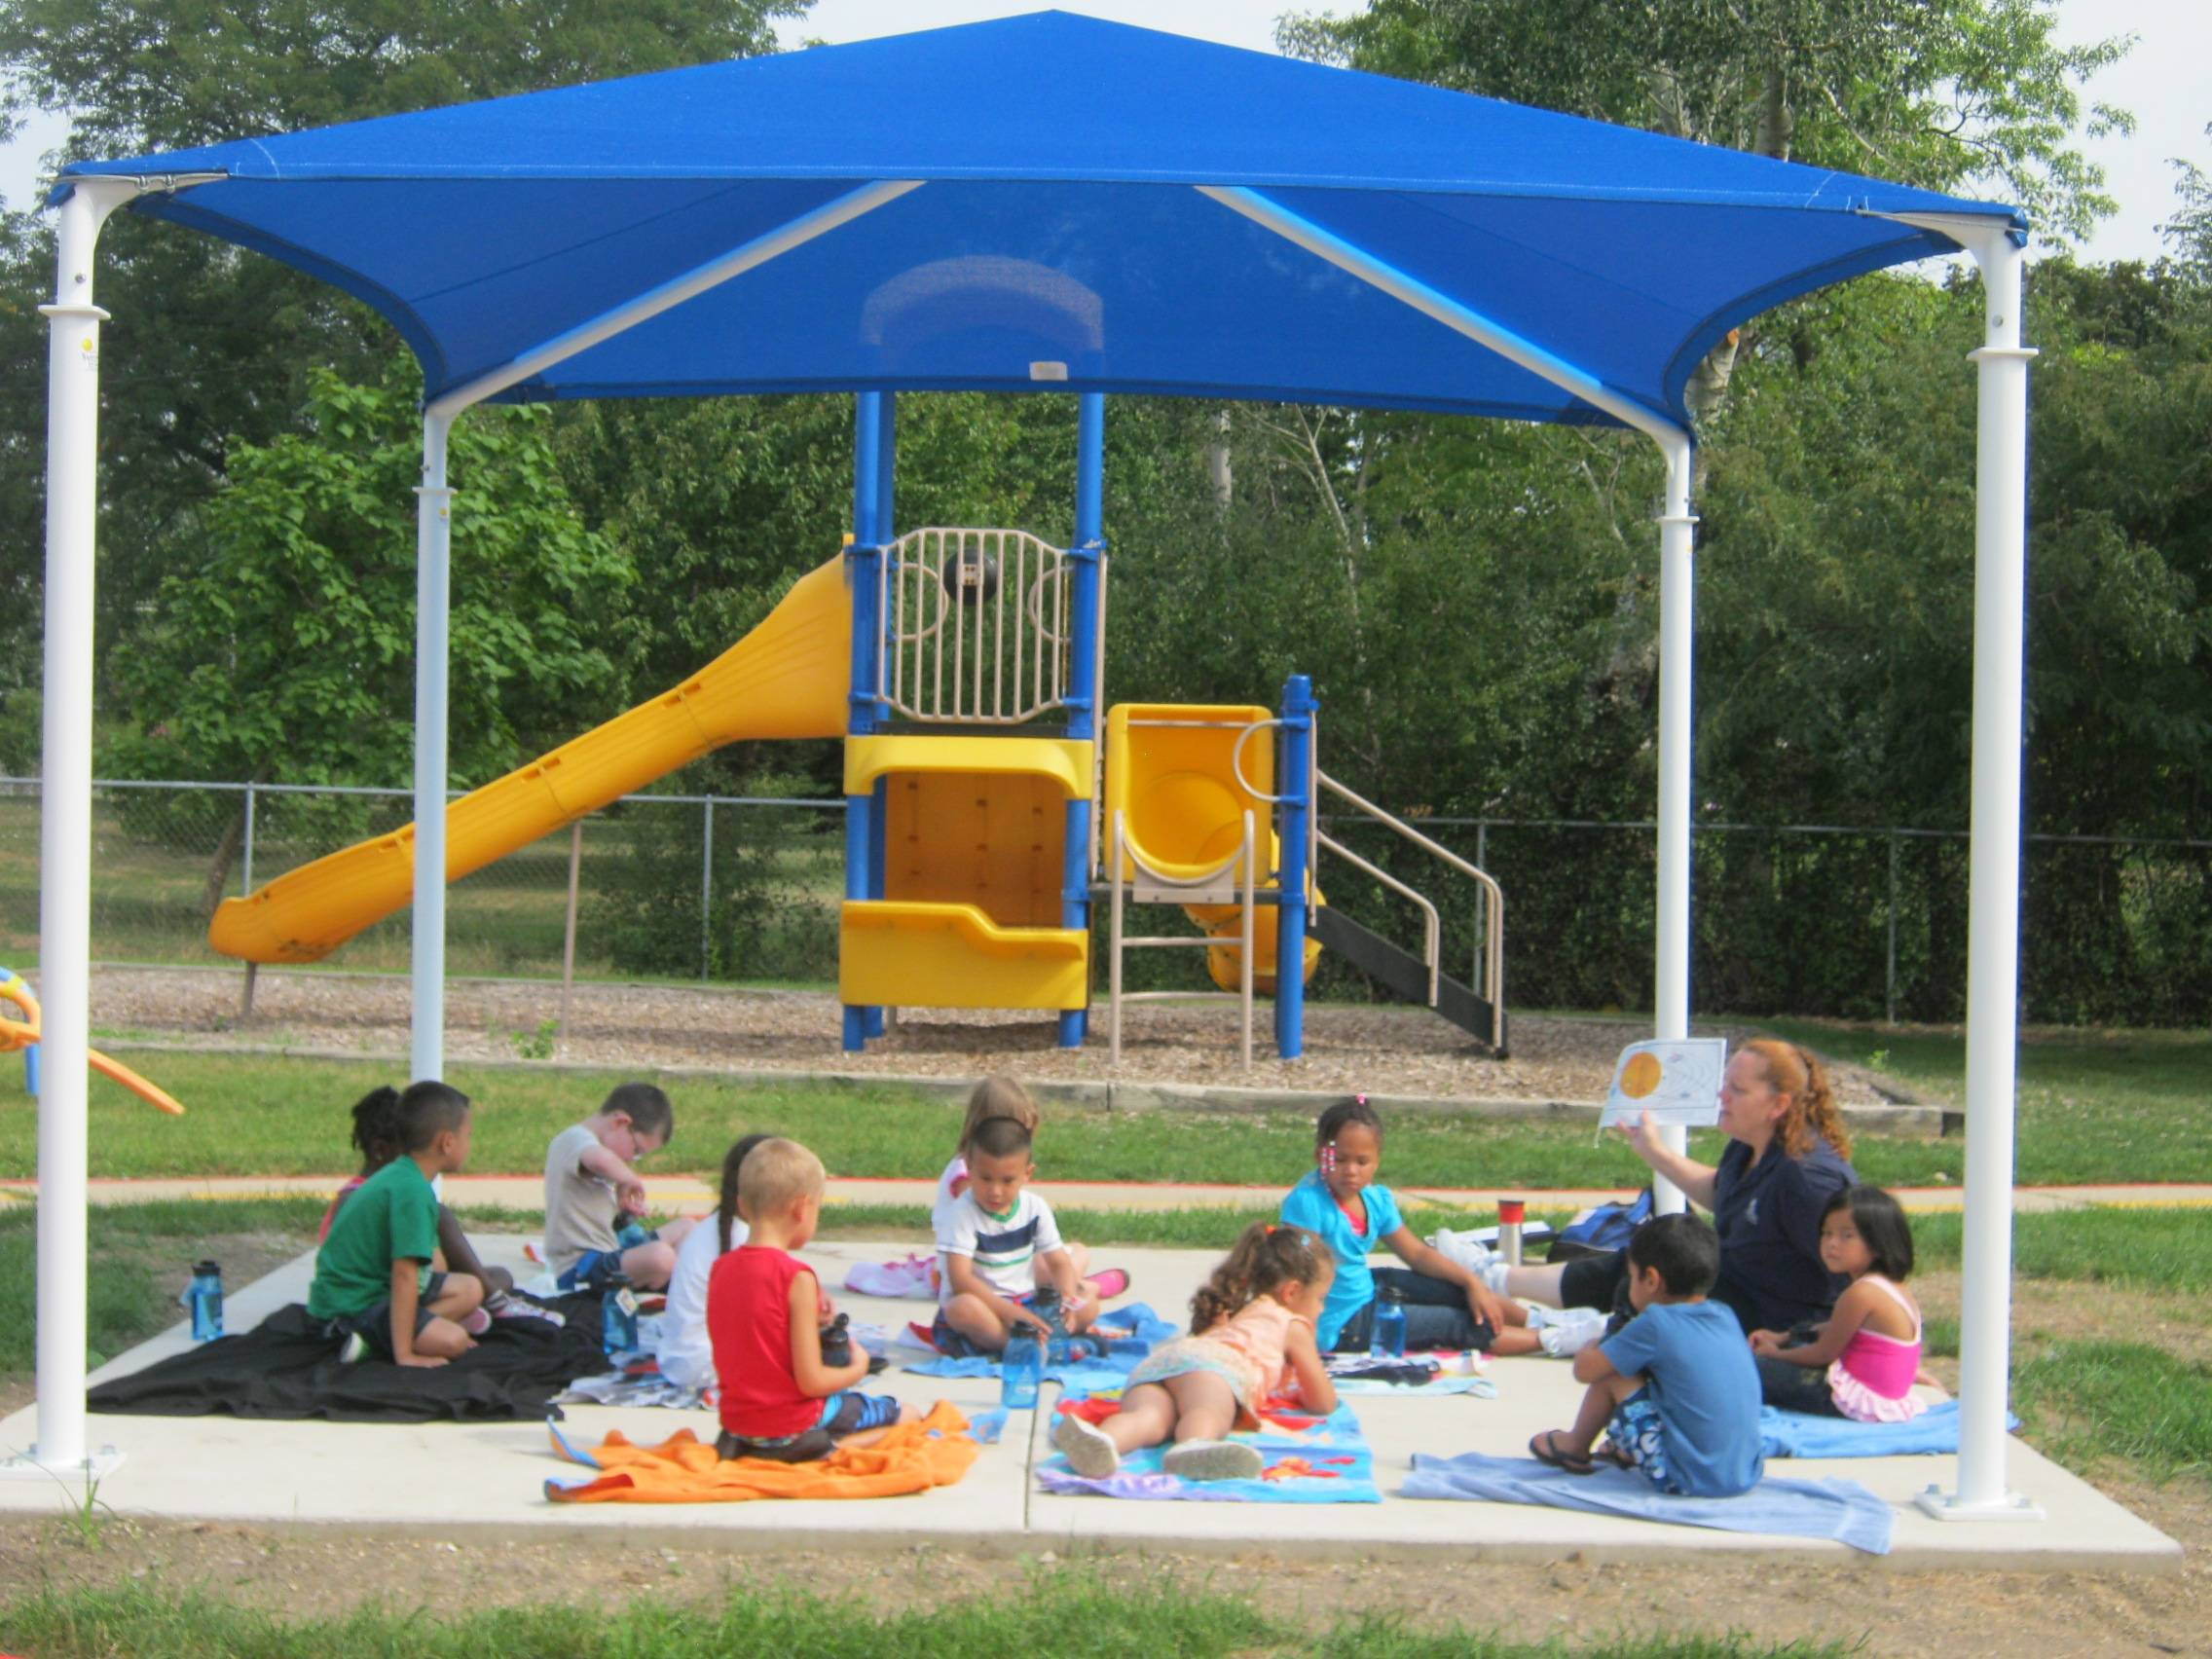 Preschool students at the Glen Ellyn KinderCare Learning Center listen to their teacher during story time under their new playground shade structure.